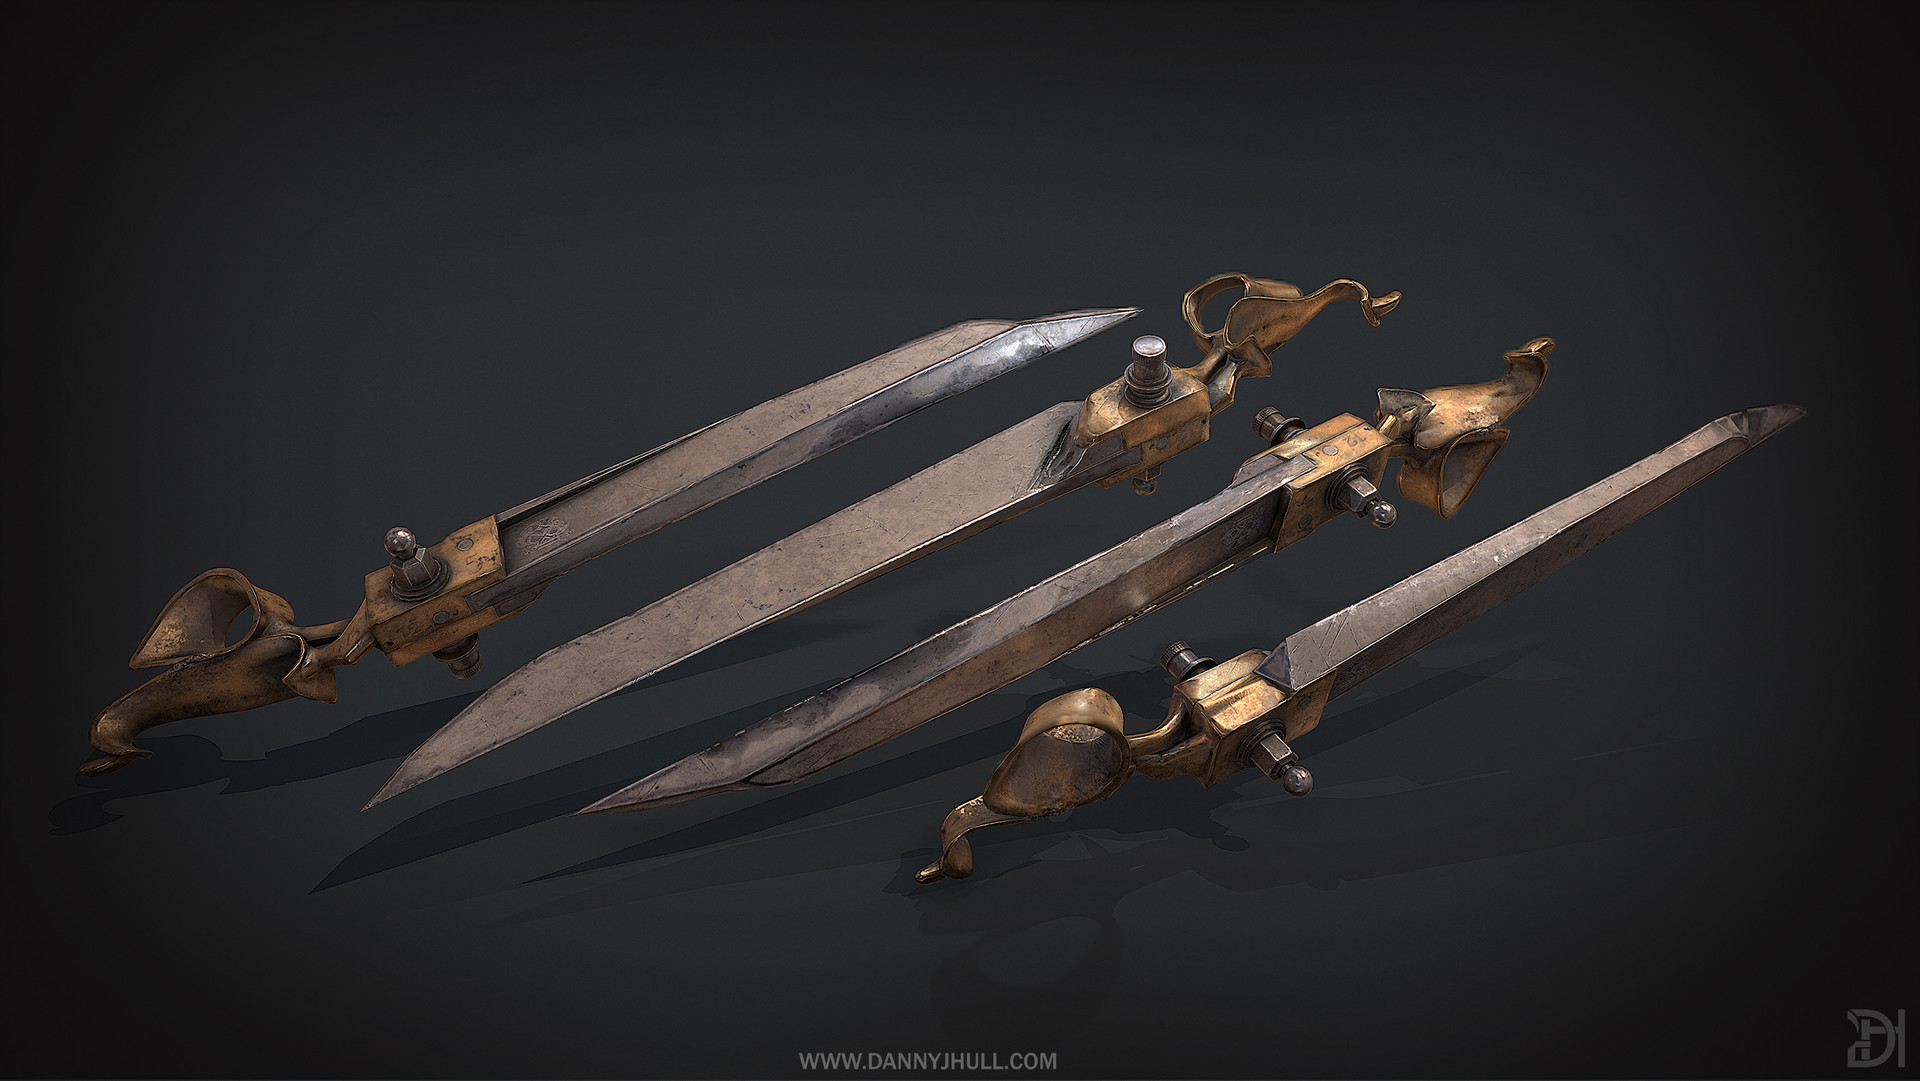 Daniel hull thug dagger dishonored multi render